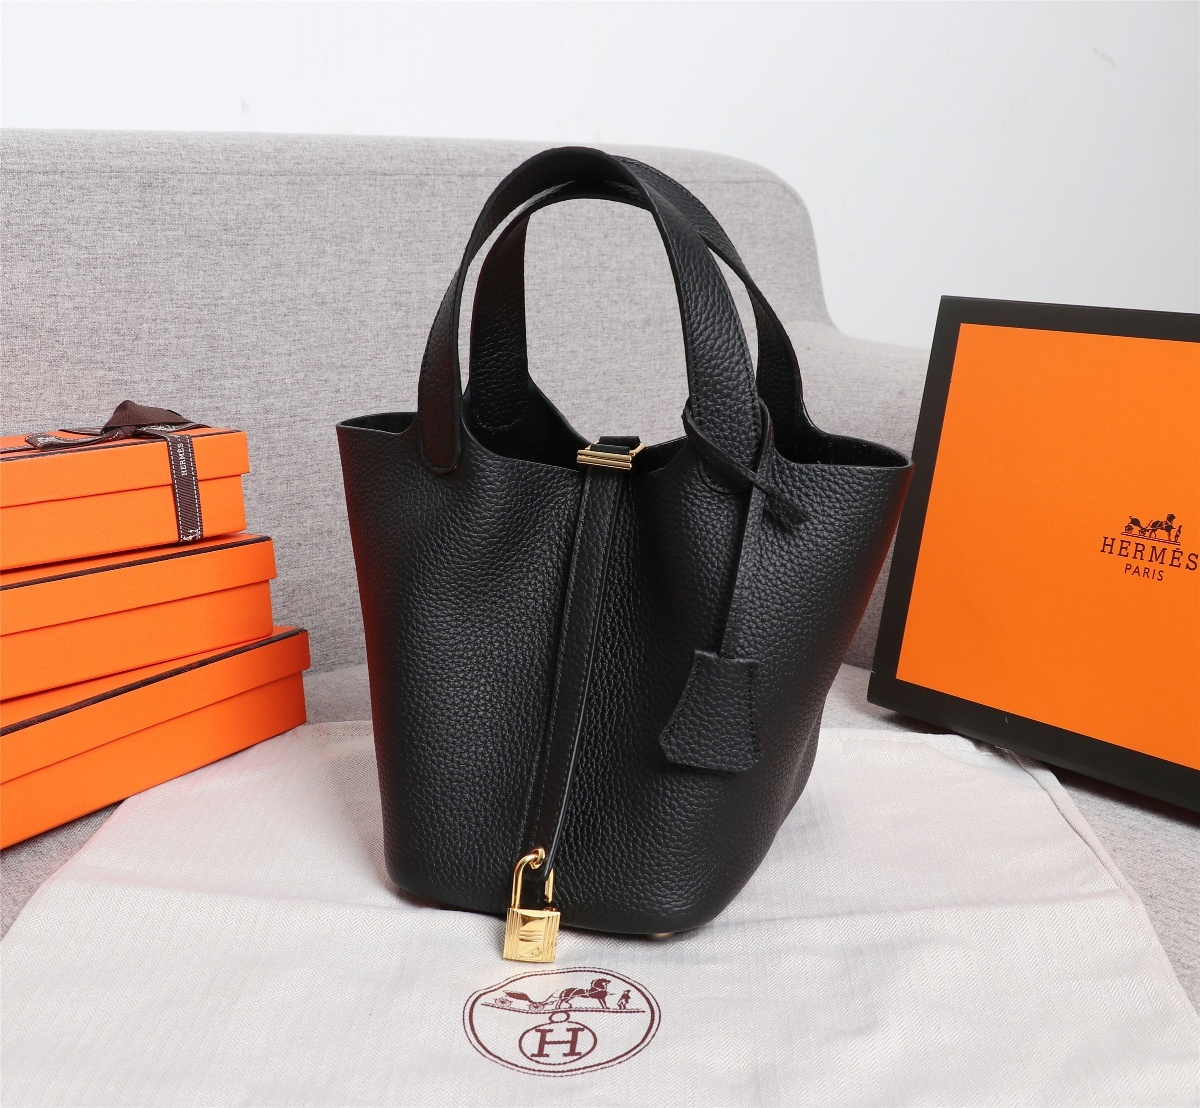 Replica Hermes Picotin Lock Bag 18cm and 22cm Black with Gold Hardware